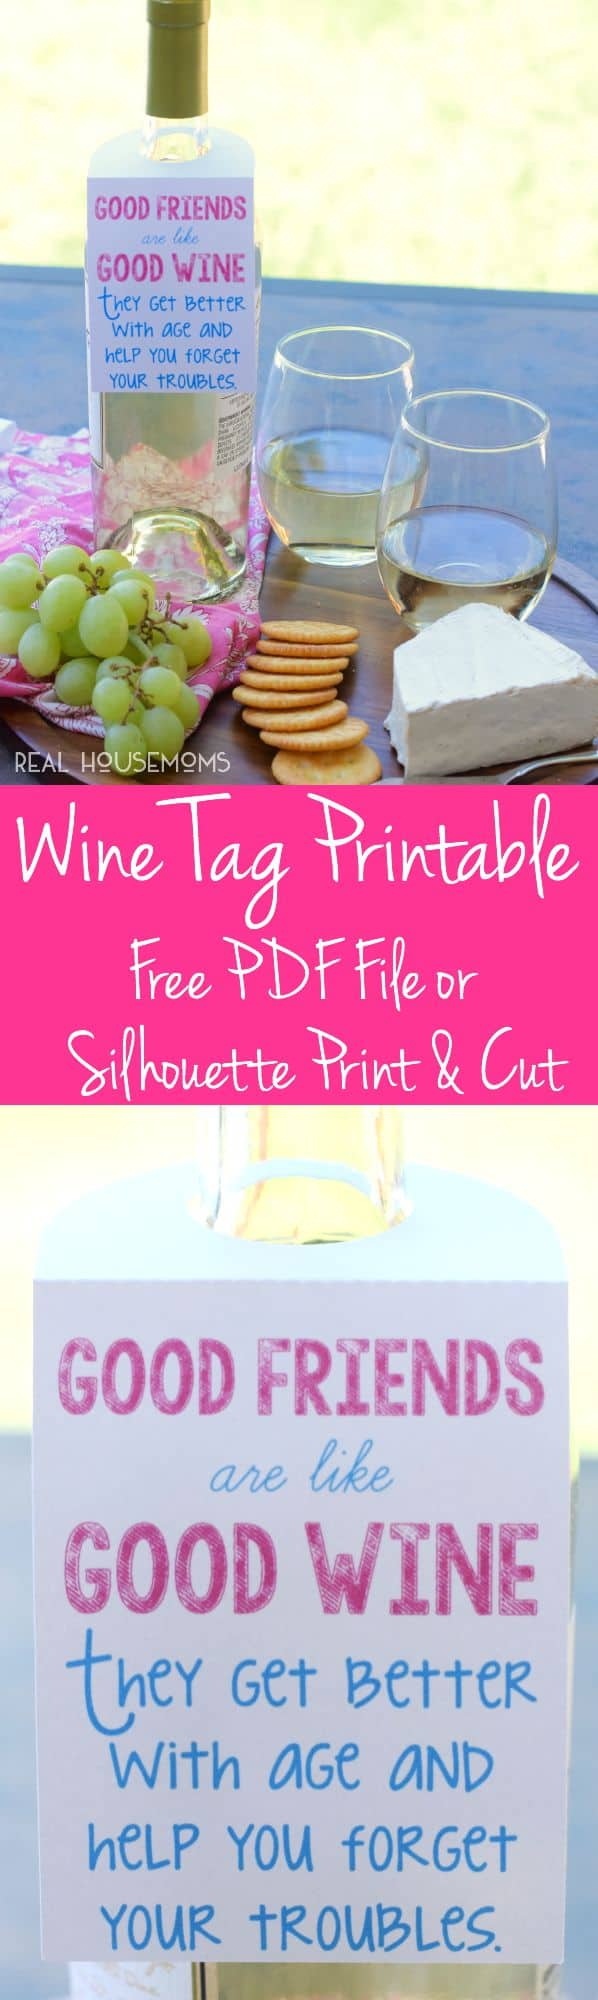 This Free Wine Tag Printable makes for such a fun easy gift for friends and is available as a PDF or Silhouette Print and Cut file!